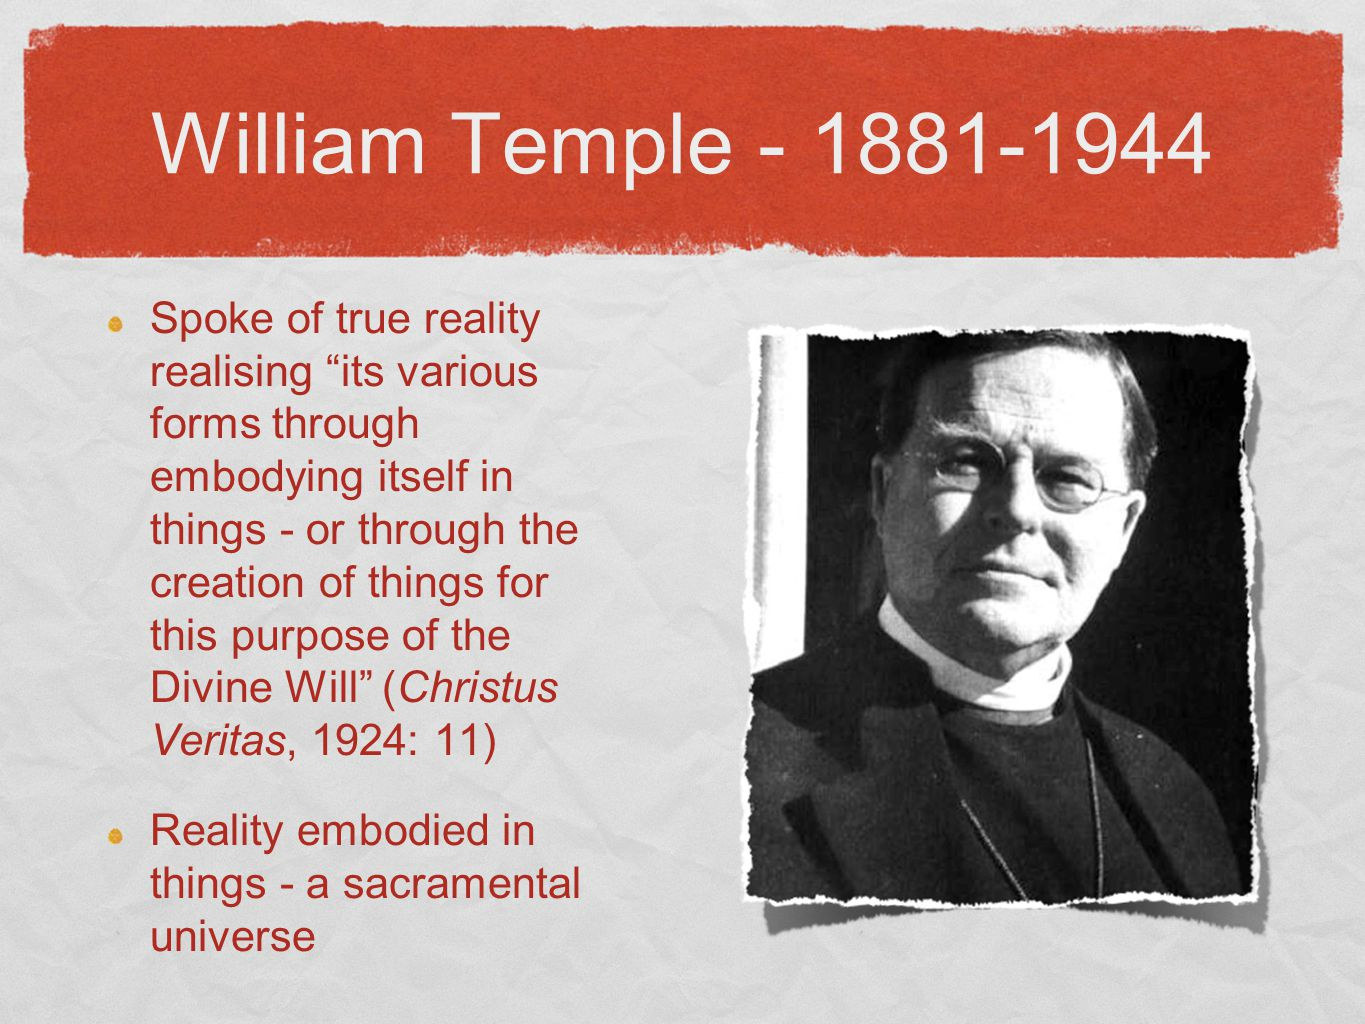 William Temple - 1881-1944 Spoke of true reality realising its various forms through embodying itself in things - or through the creation of things for this purpose of the Divine Will (Christus Veritas, 1924: 11) Reality embodied in things - a sacramental universe